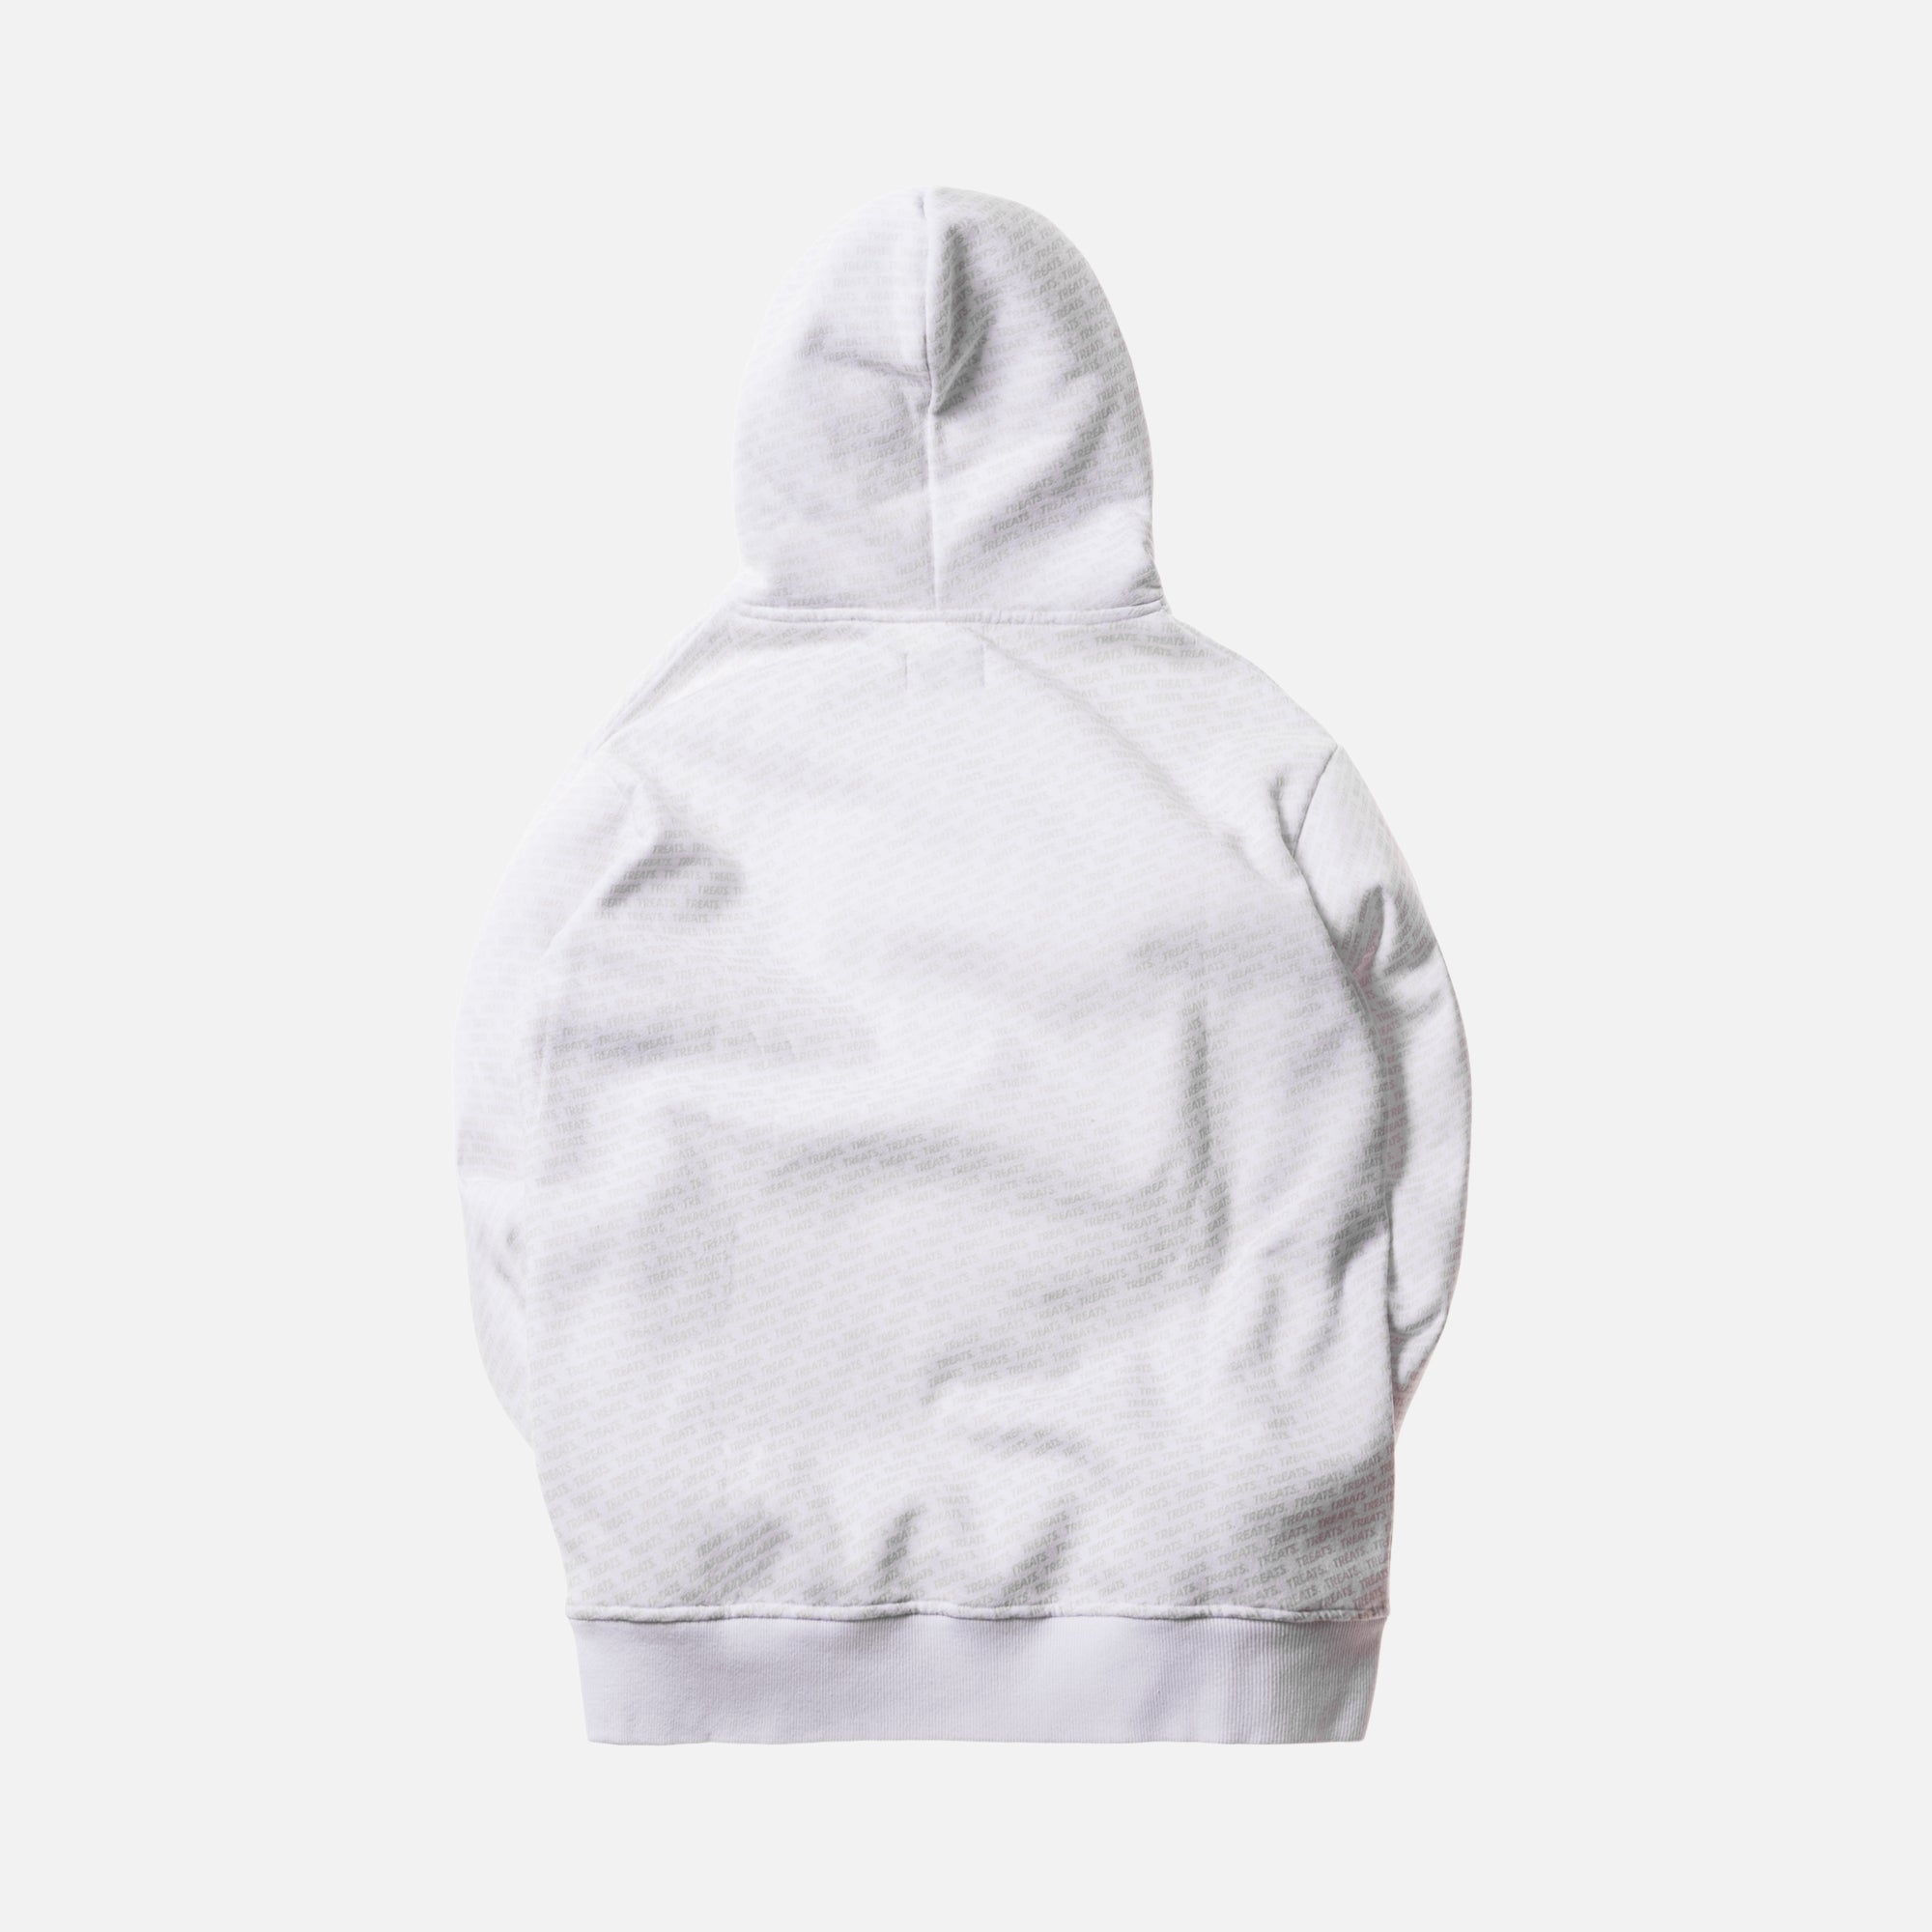 Kith Treats Cereal Boy Hoodie - White